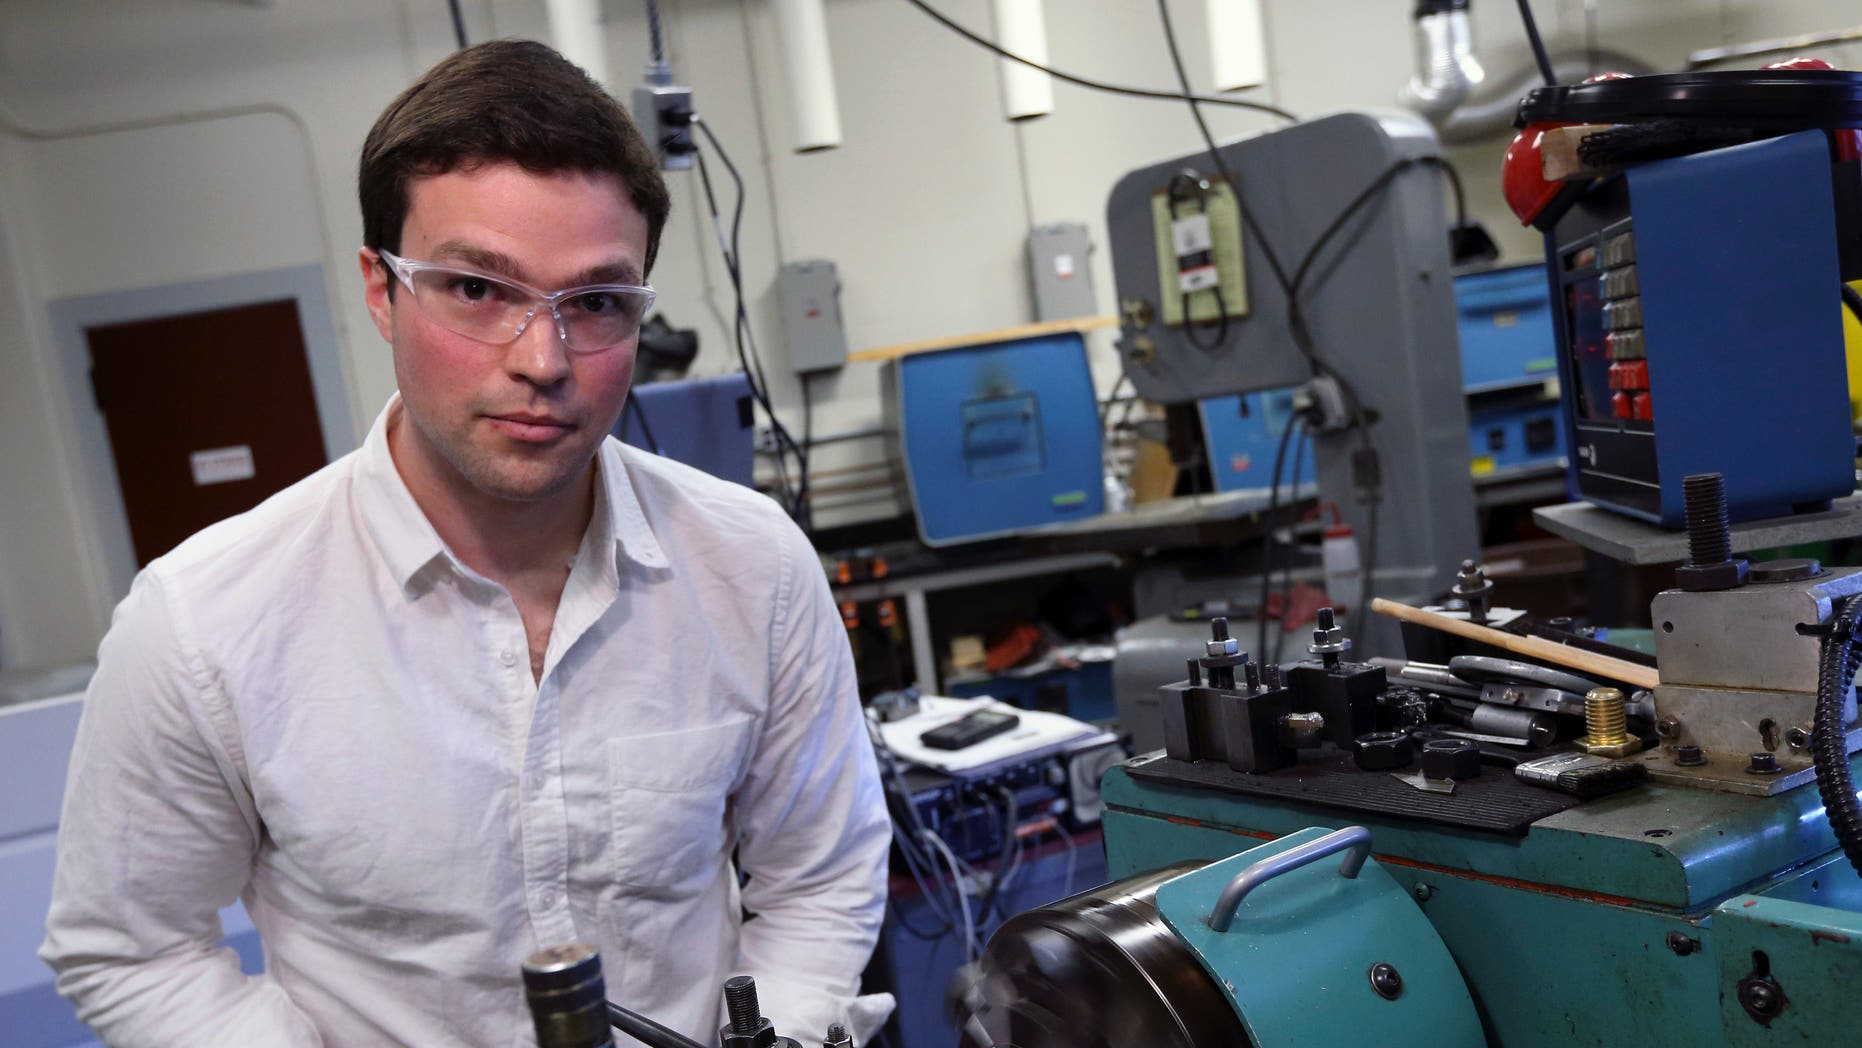 March 15, 2013: Massachusetts Institute of Technology doctoral candidate in mechanical engineering Nikolai Begg poses in an MIT workshop in Cambridge, Mass.